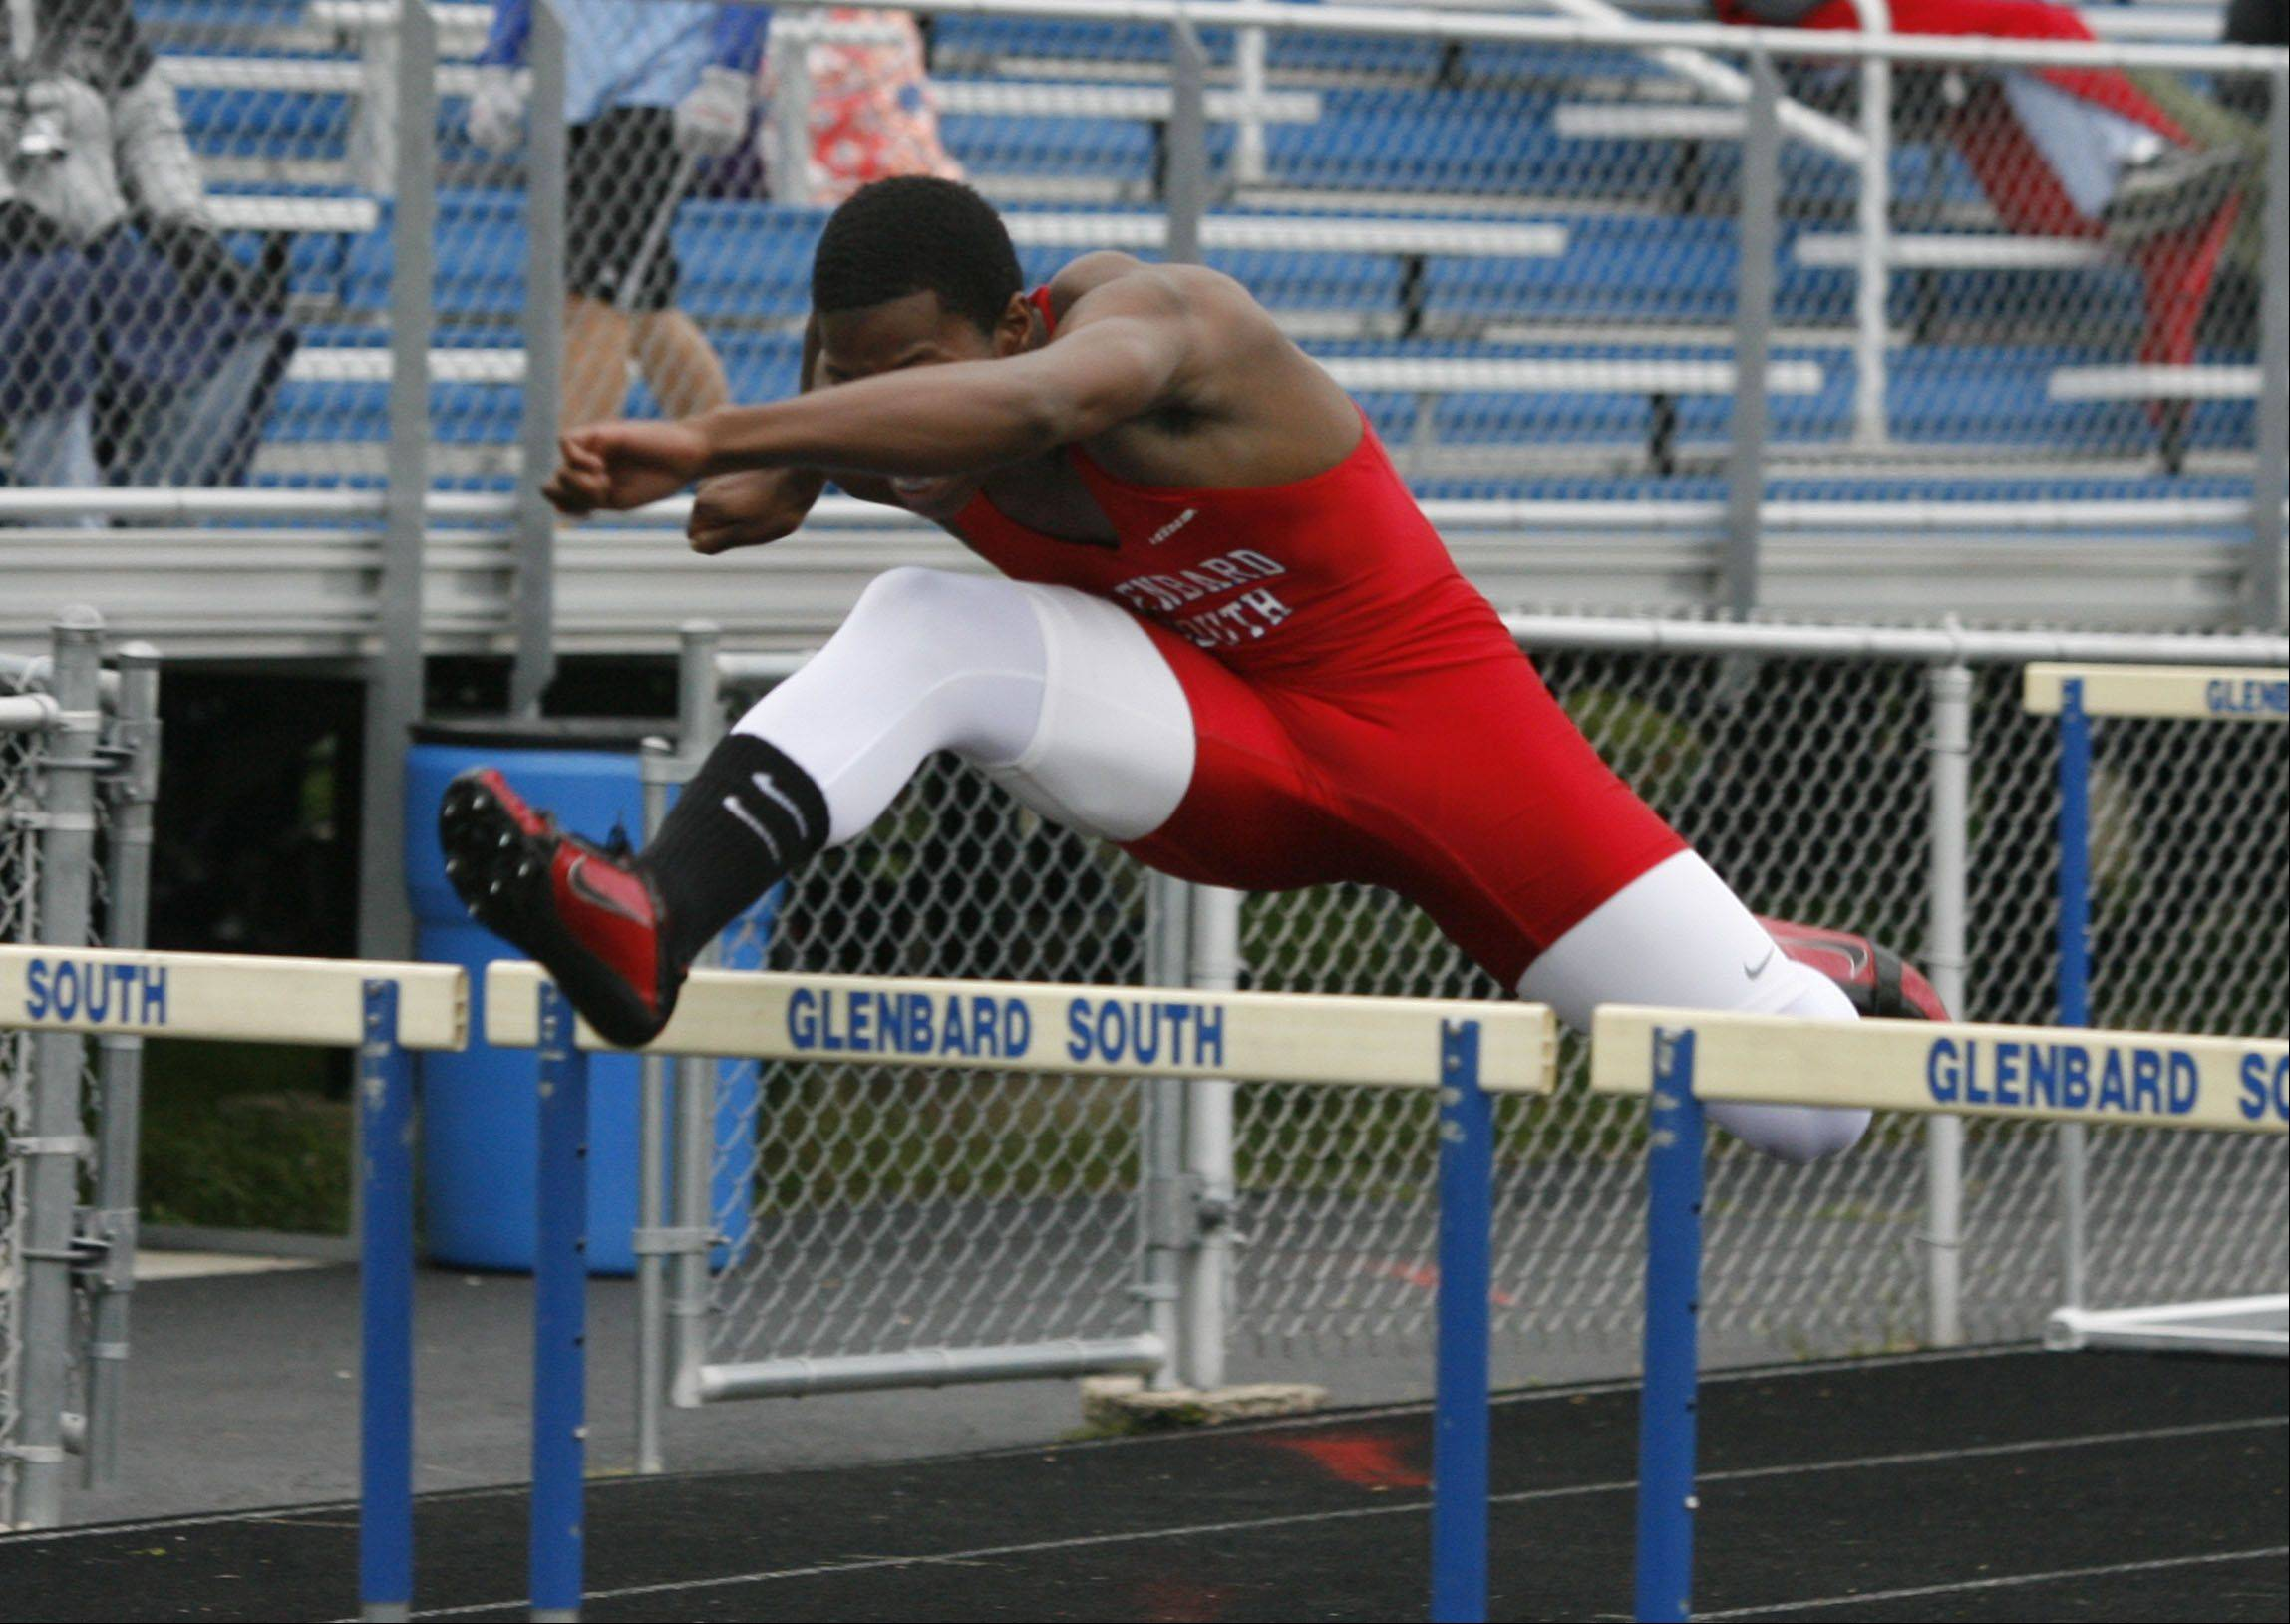 Glenbard South's Elven Walker wins the 110 Meter Hurdles, during the 11th annual Raider Track & Field Invitational at Glenbard South.